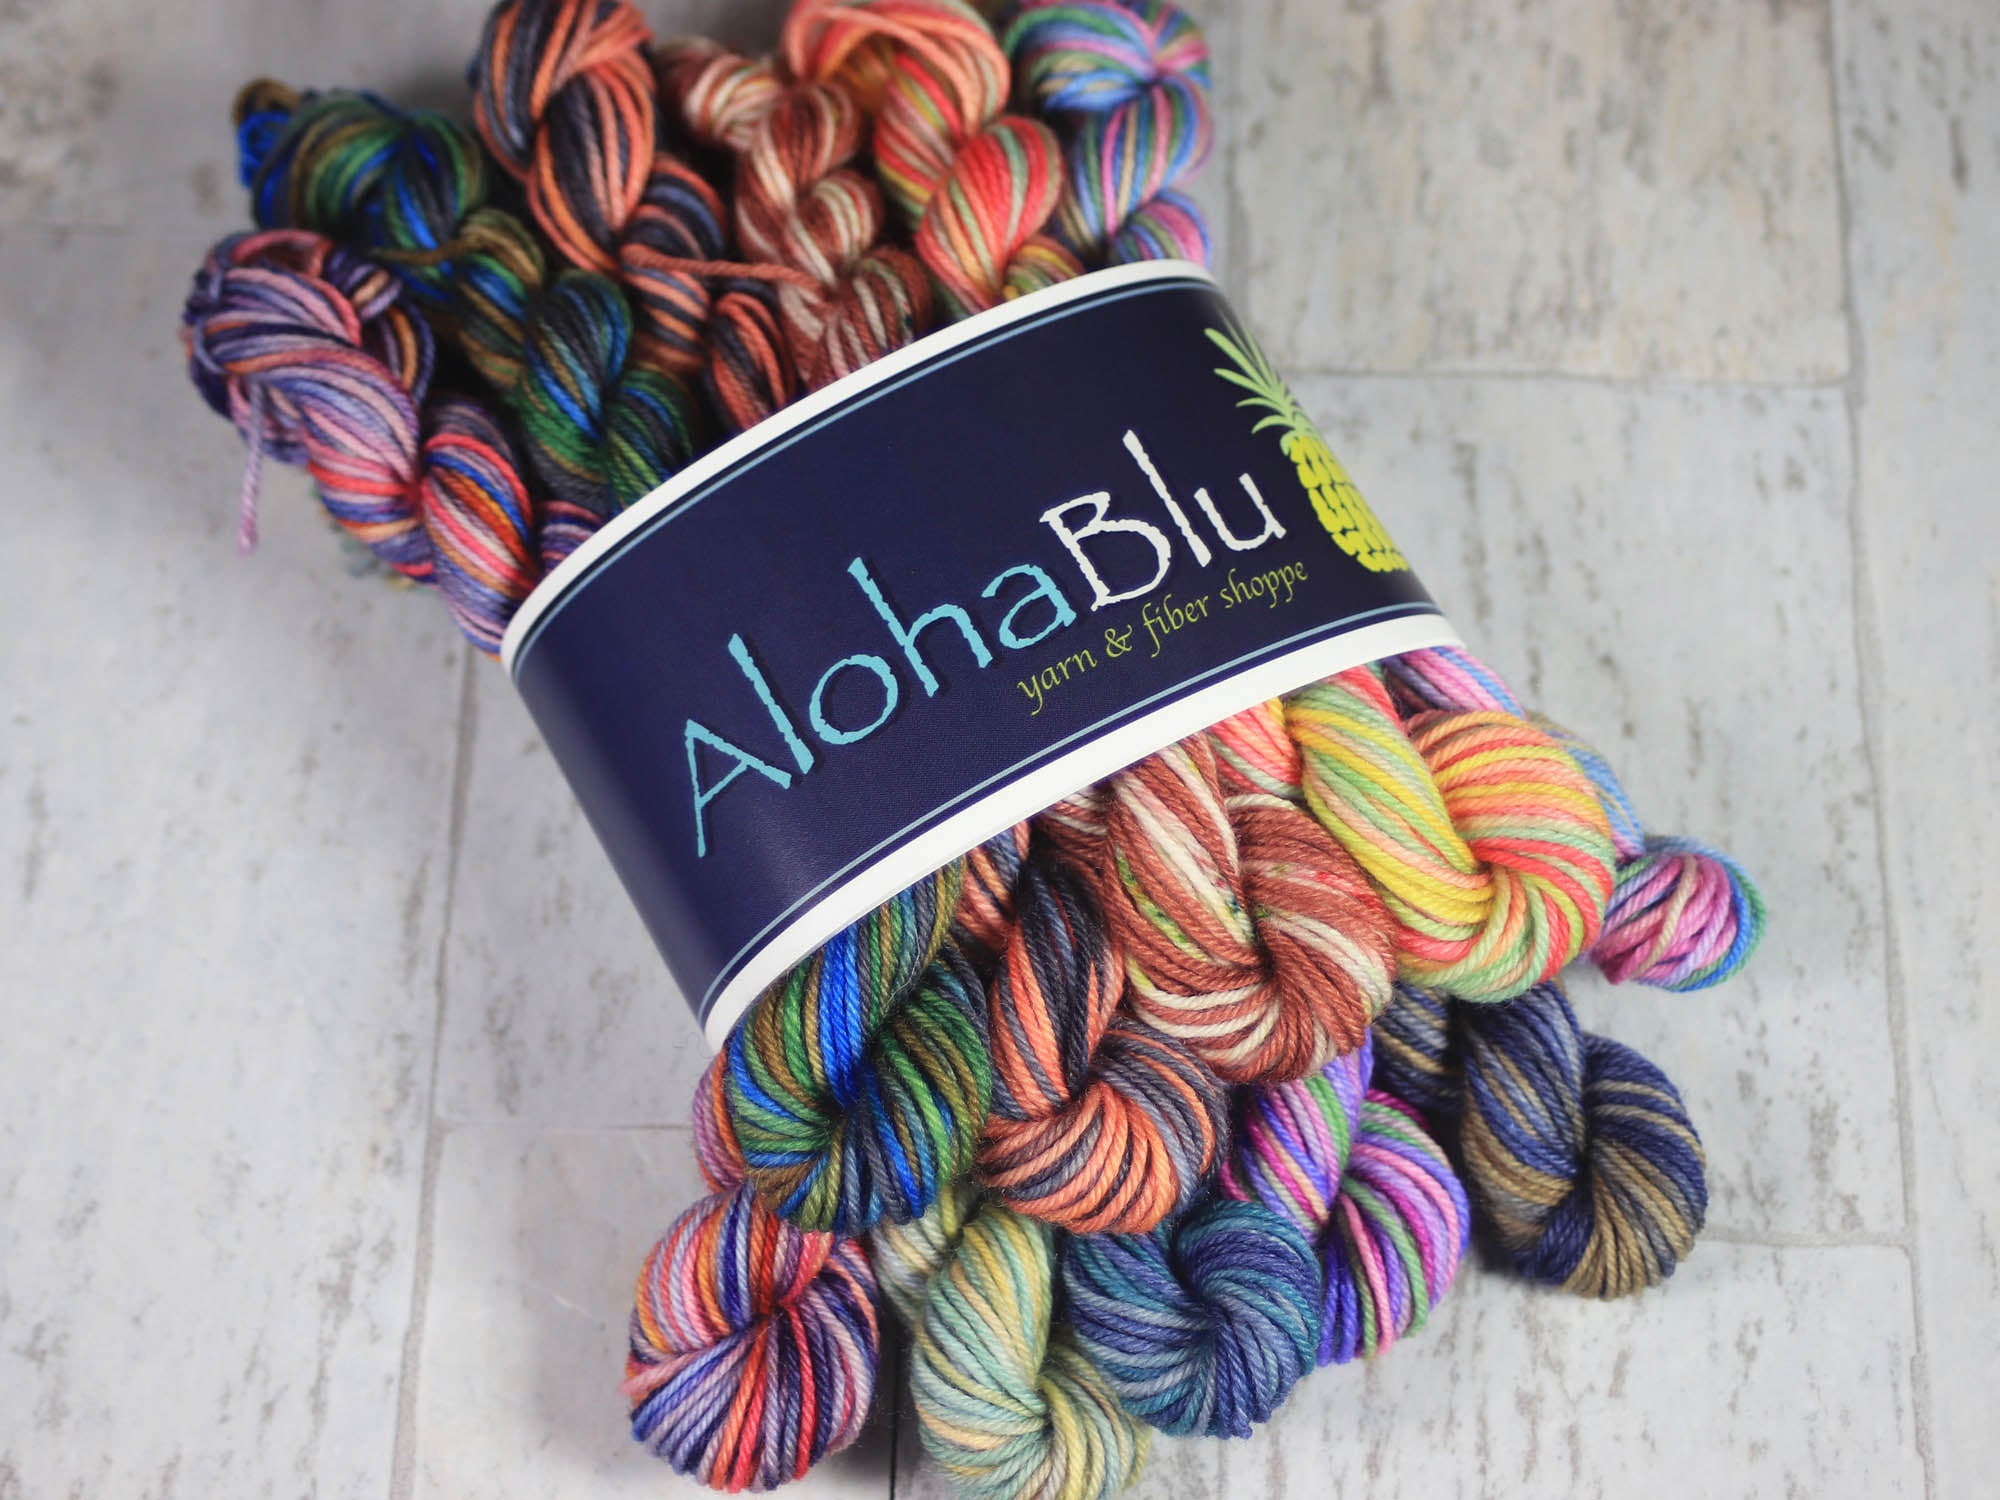 "MENEHUNE MINI SKEINS ""3-State Mini's Set"": 10x - 10gram Hand-dyed sock yarn - Center pull balls - Inspired by Hawaii, California, Alaska"